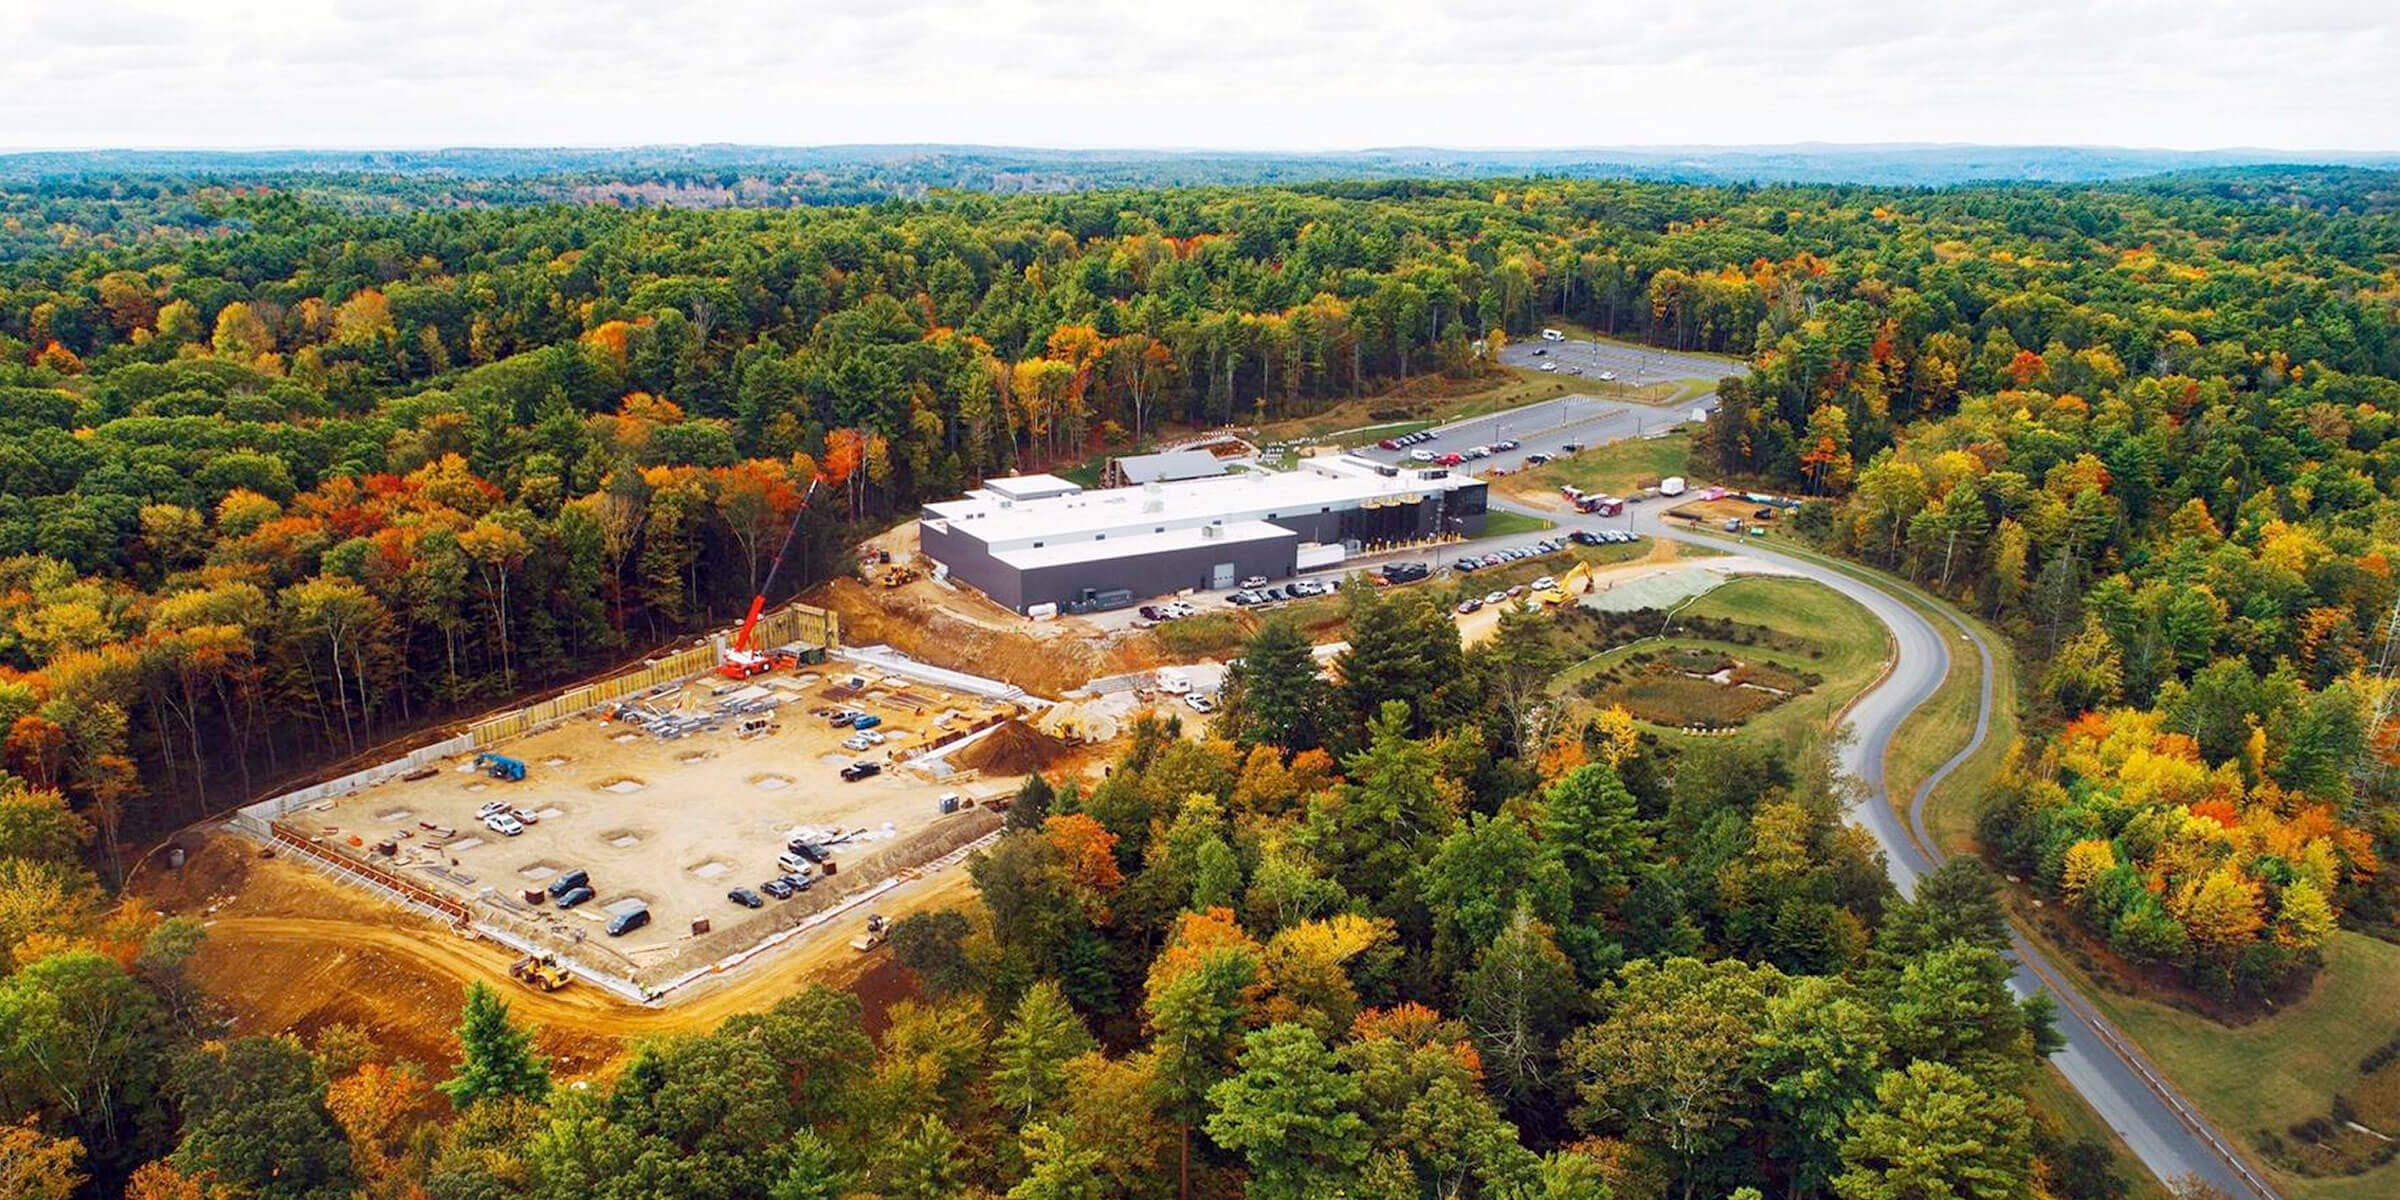 Aerial view of the grounds at Tree House Brewing Company Brewery in Charlton, Massachusetts